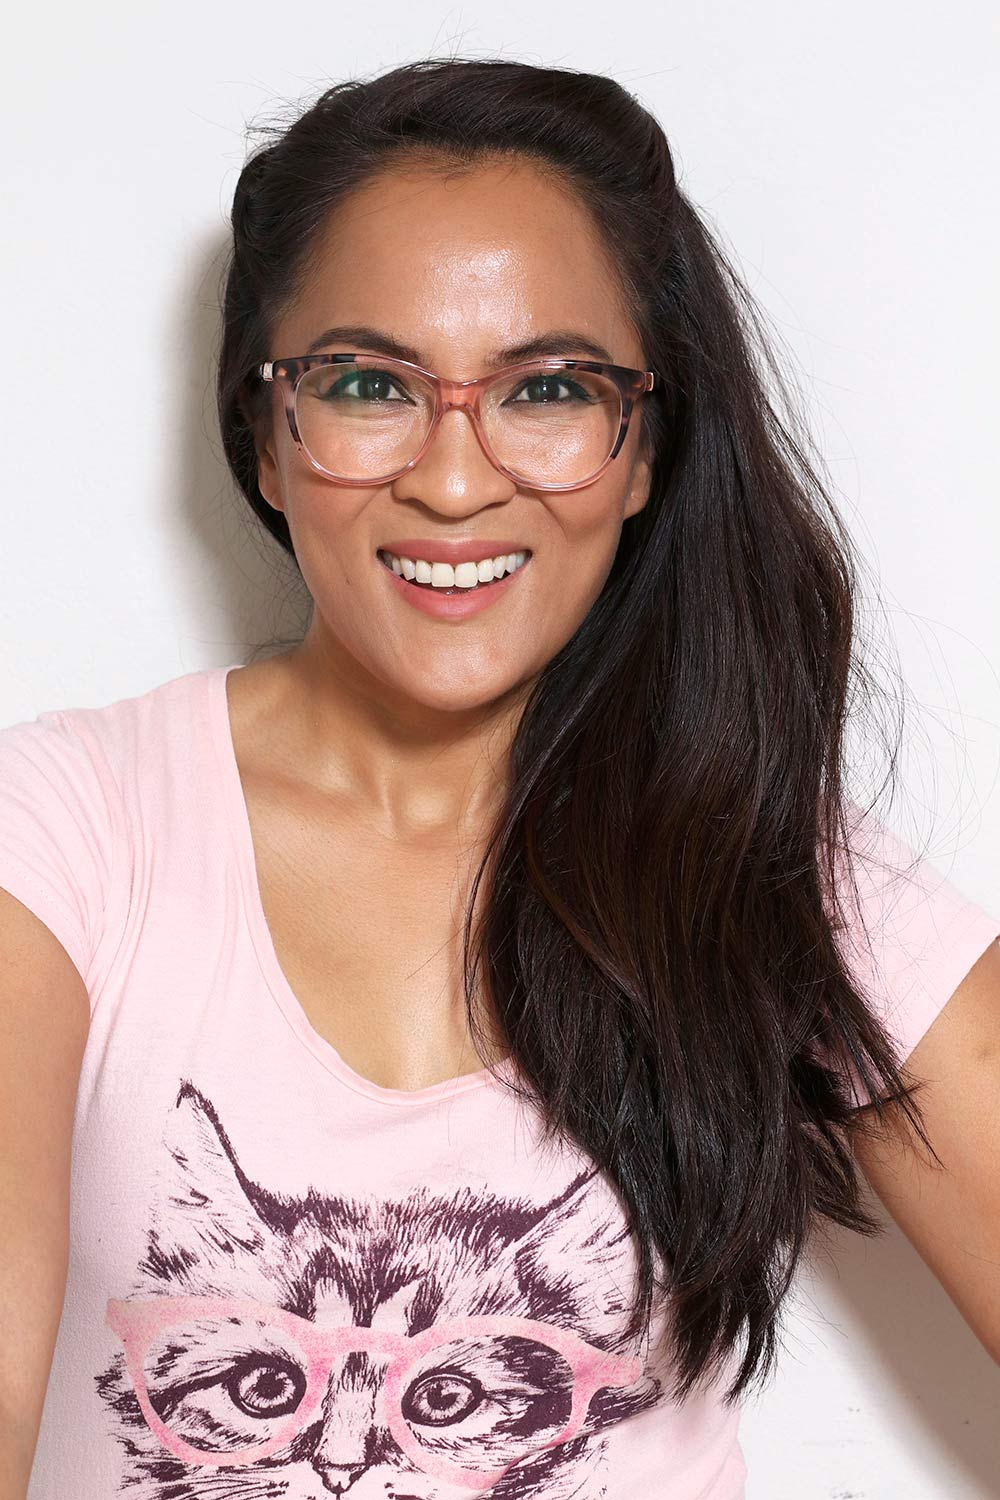 kate spade johnna glasses 3